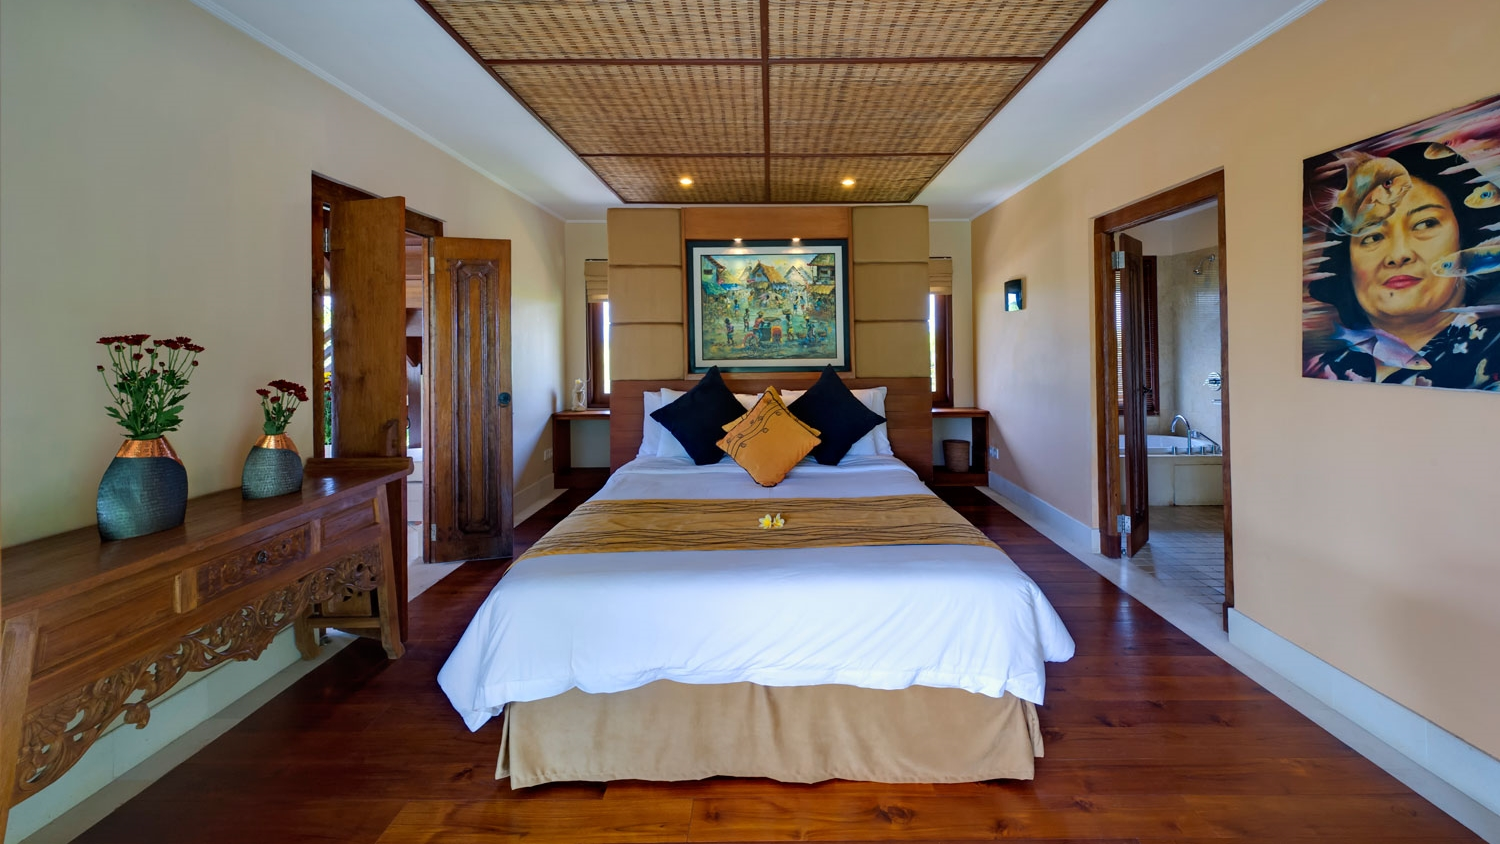 Bedroom with Wooden Floor - Villa Asmara - Seseh, Bali